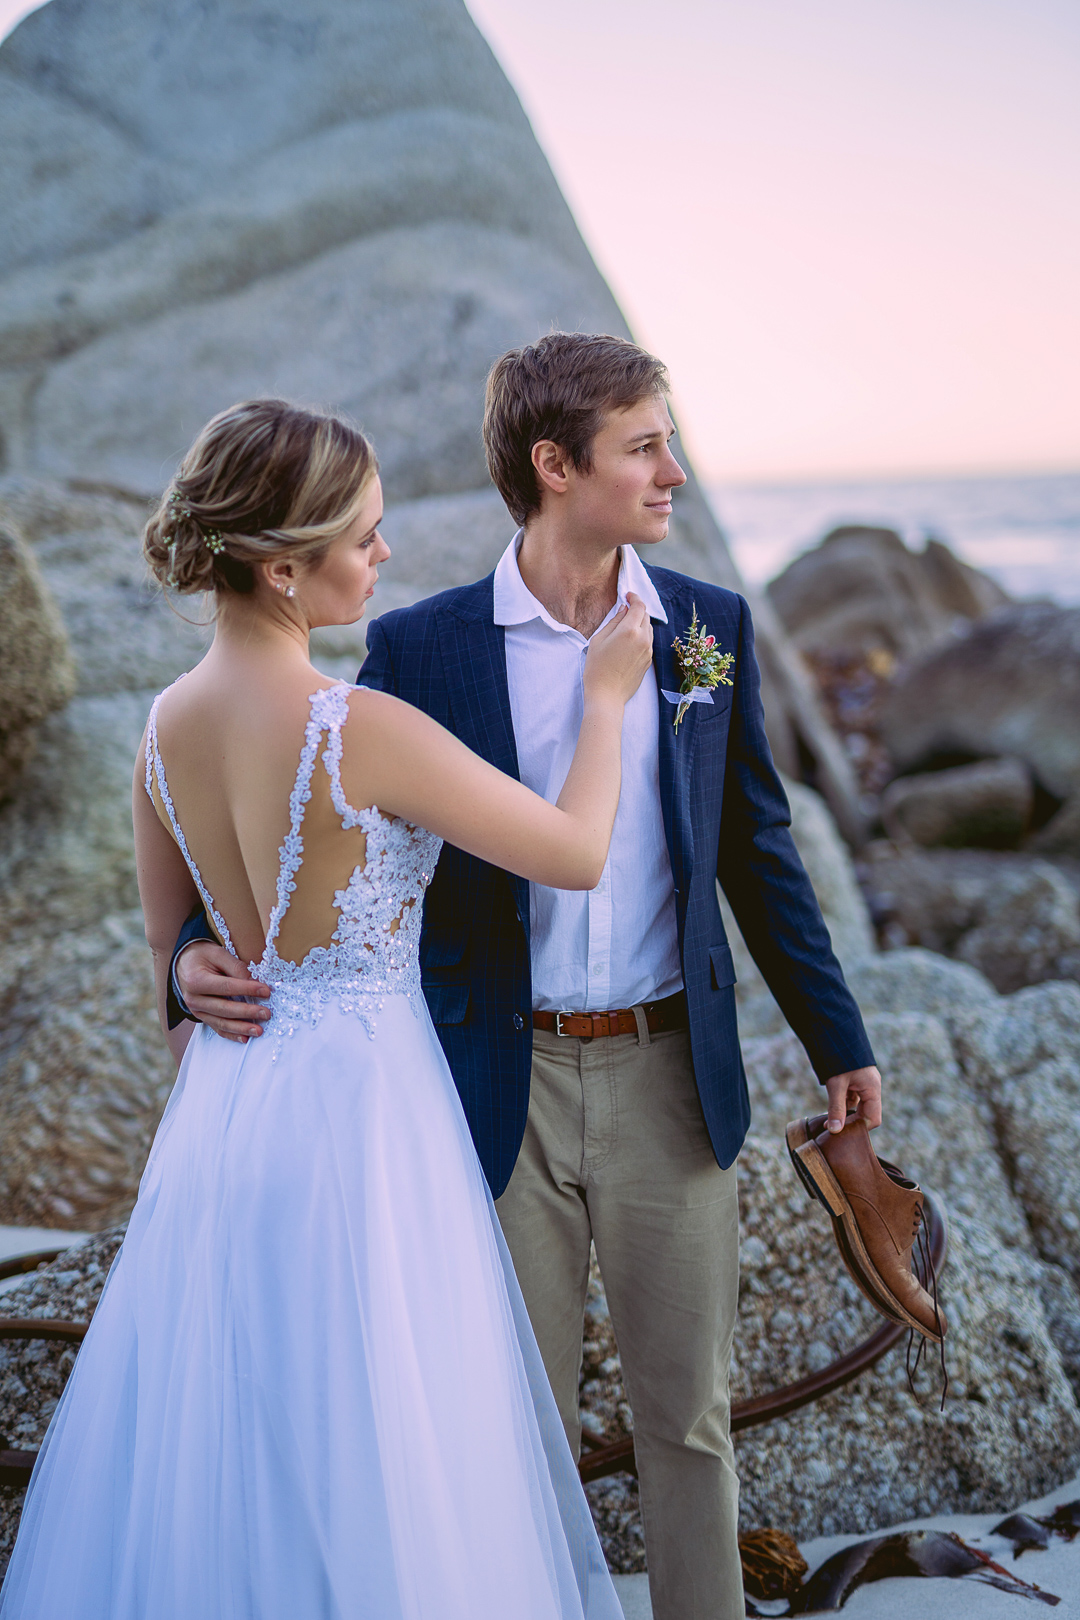 Elopement Photography Cape Town Clifton by Cape Image Co. (small file)-25.jpg